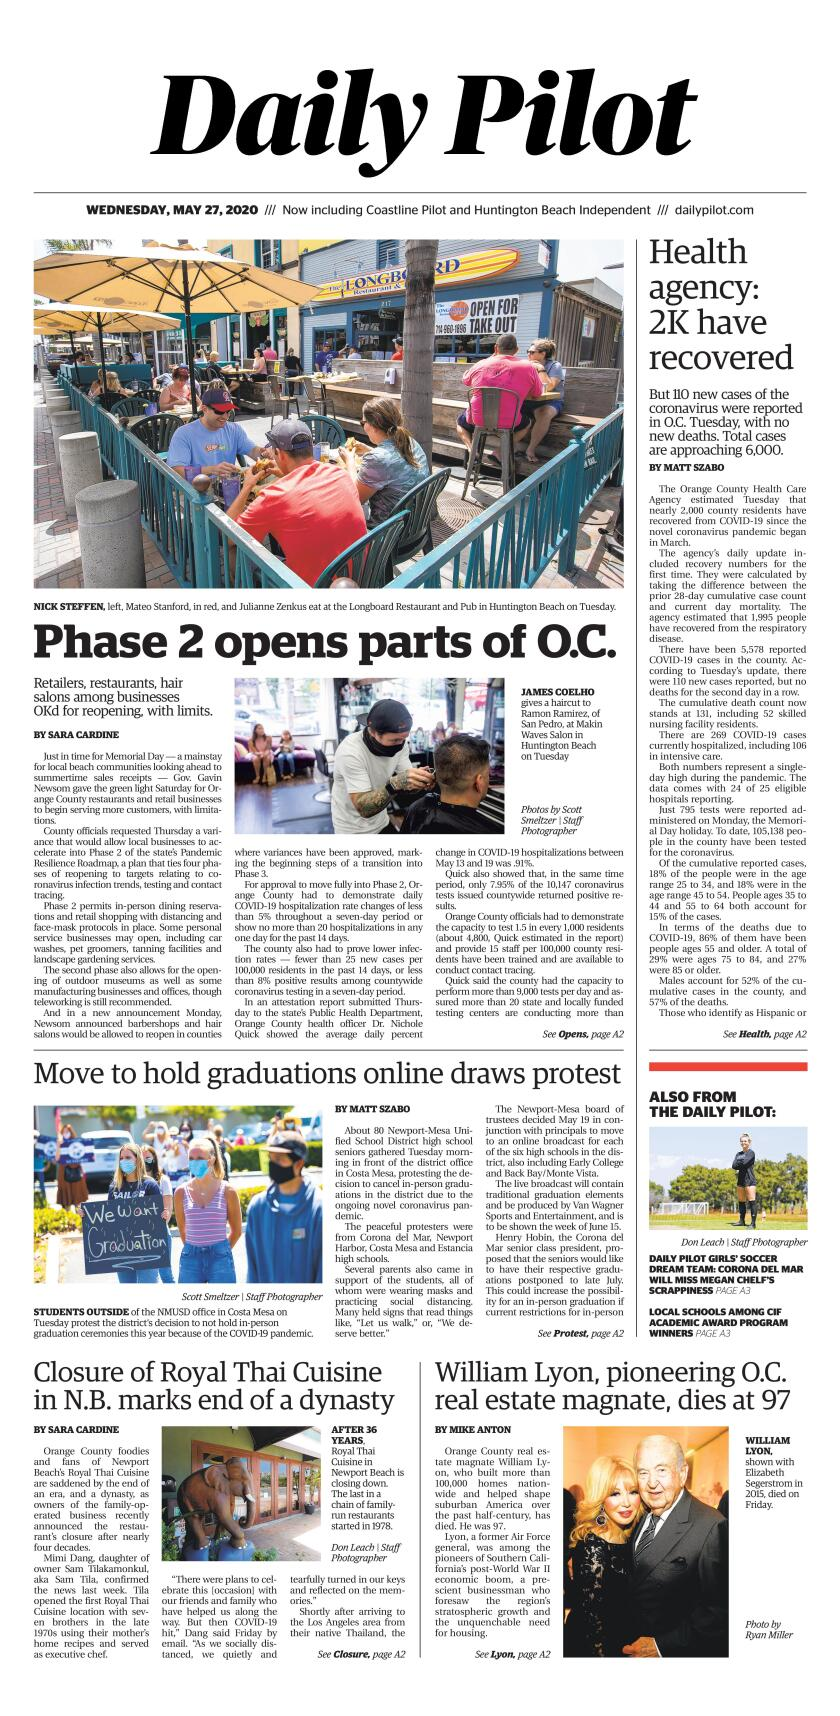 Daily Pilot e-Newspaper: Wednesday, May 27, 2020